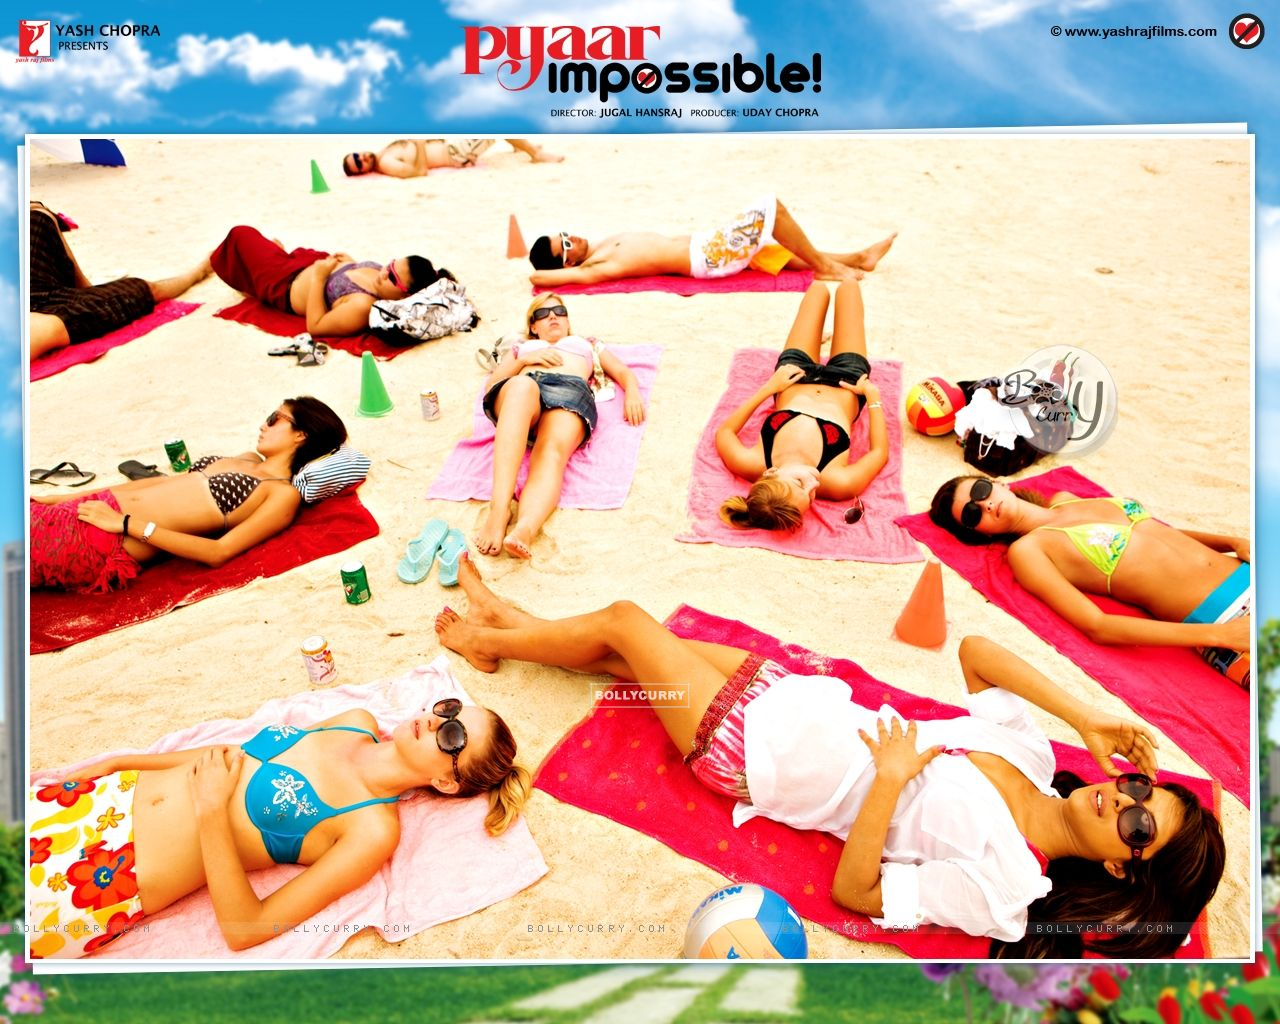 Pyaar Impossible movie wallpaper (40432) size:1280x1024